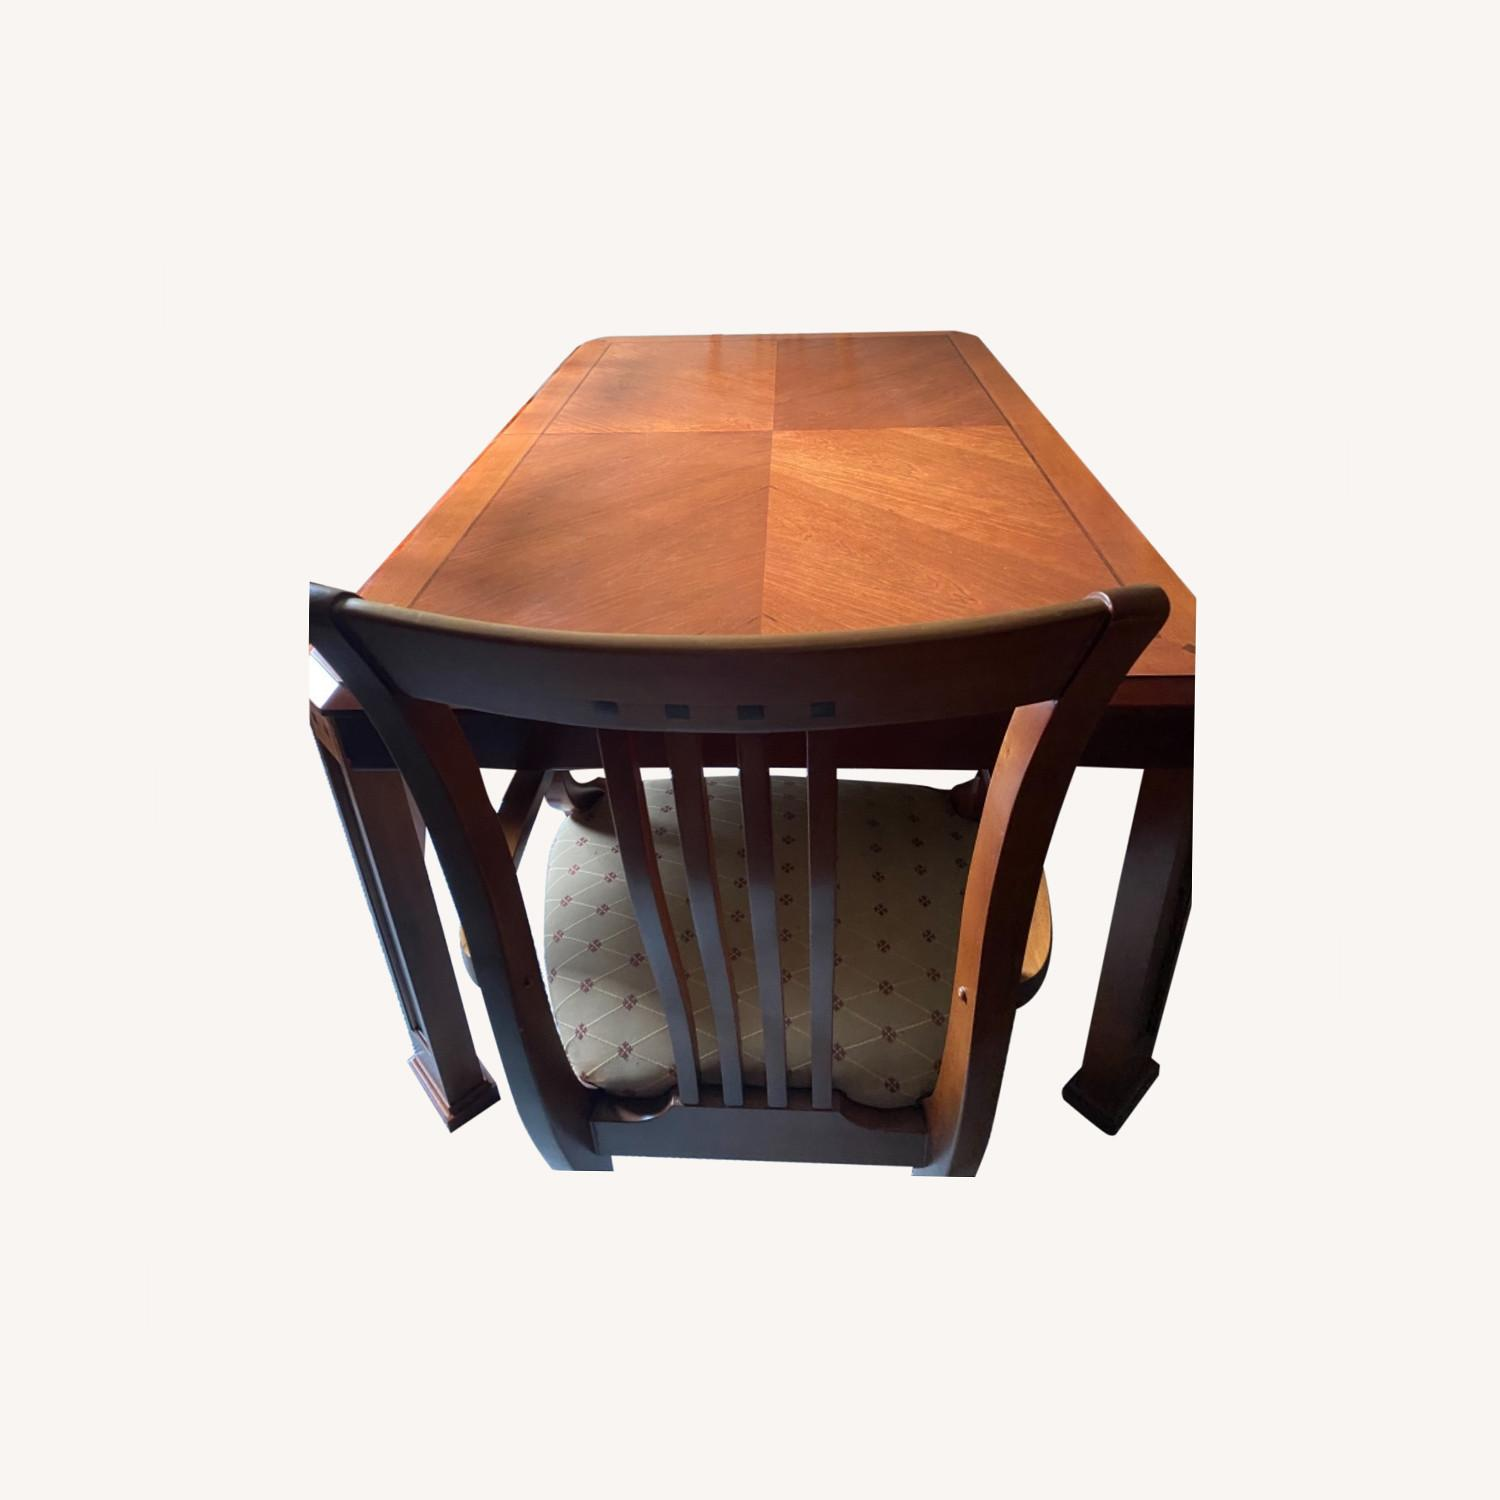 Ethan Allen Dining Table - image-0